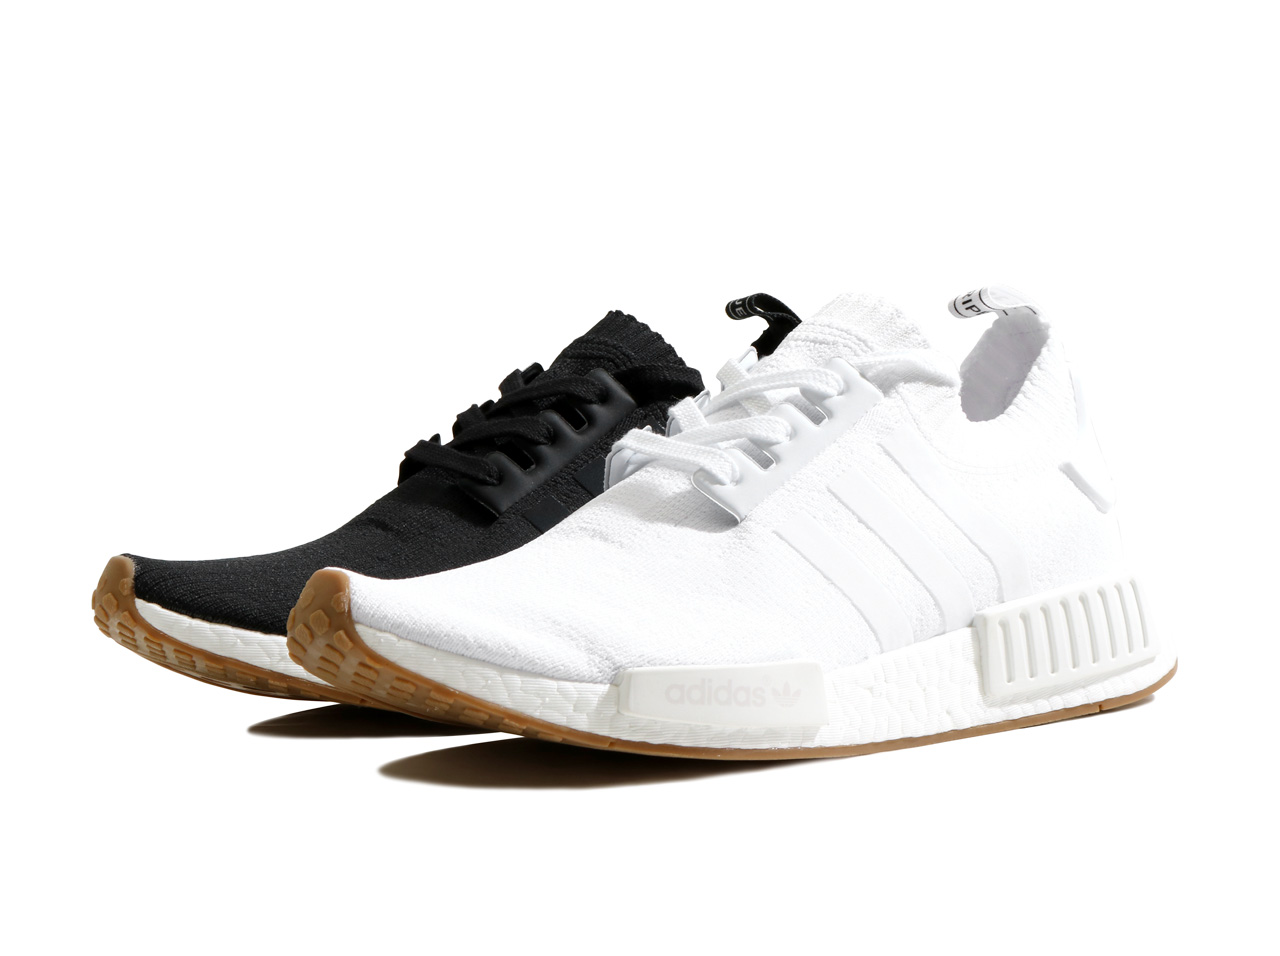 adidas_originals_nmd_by1887_by1888